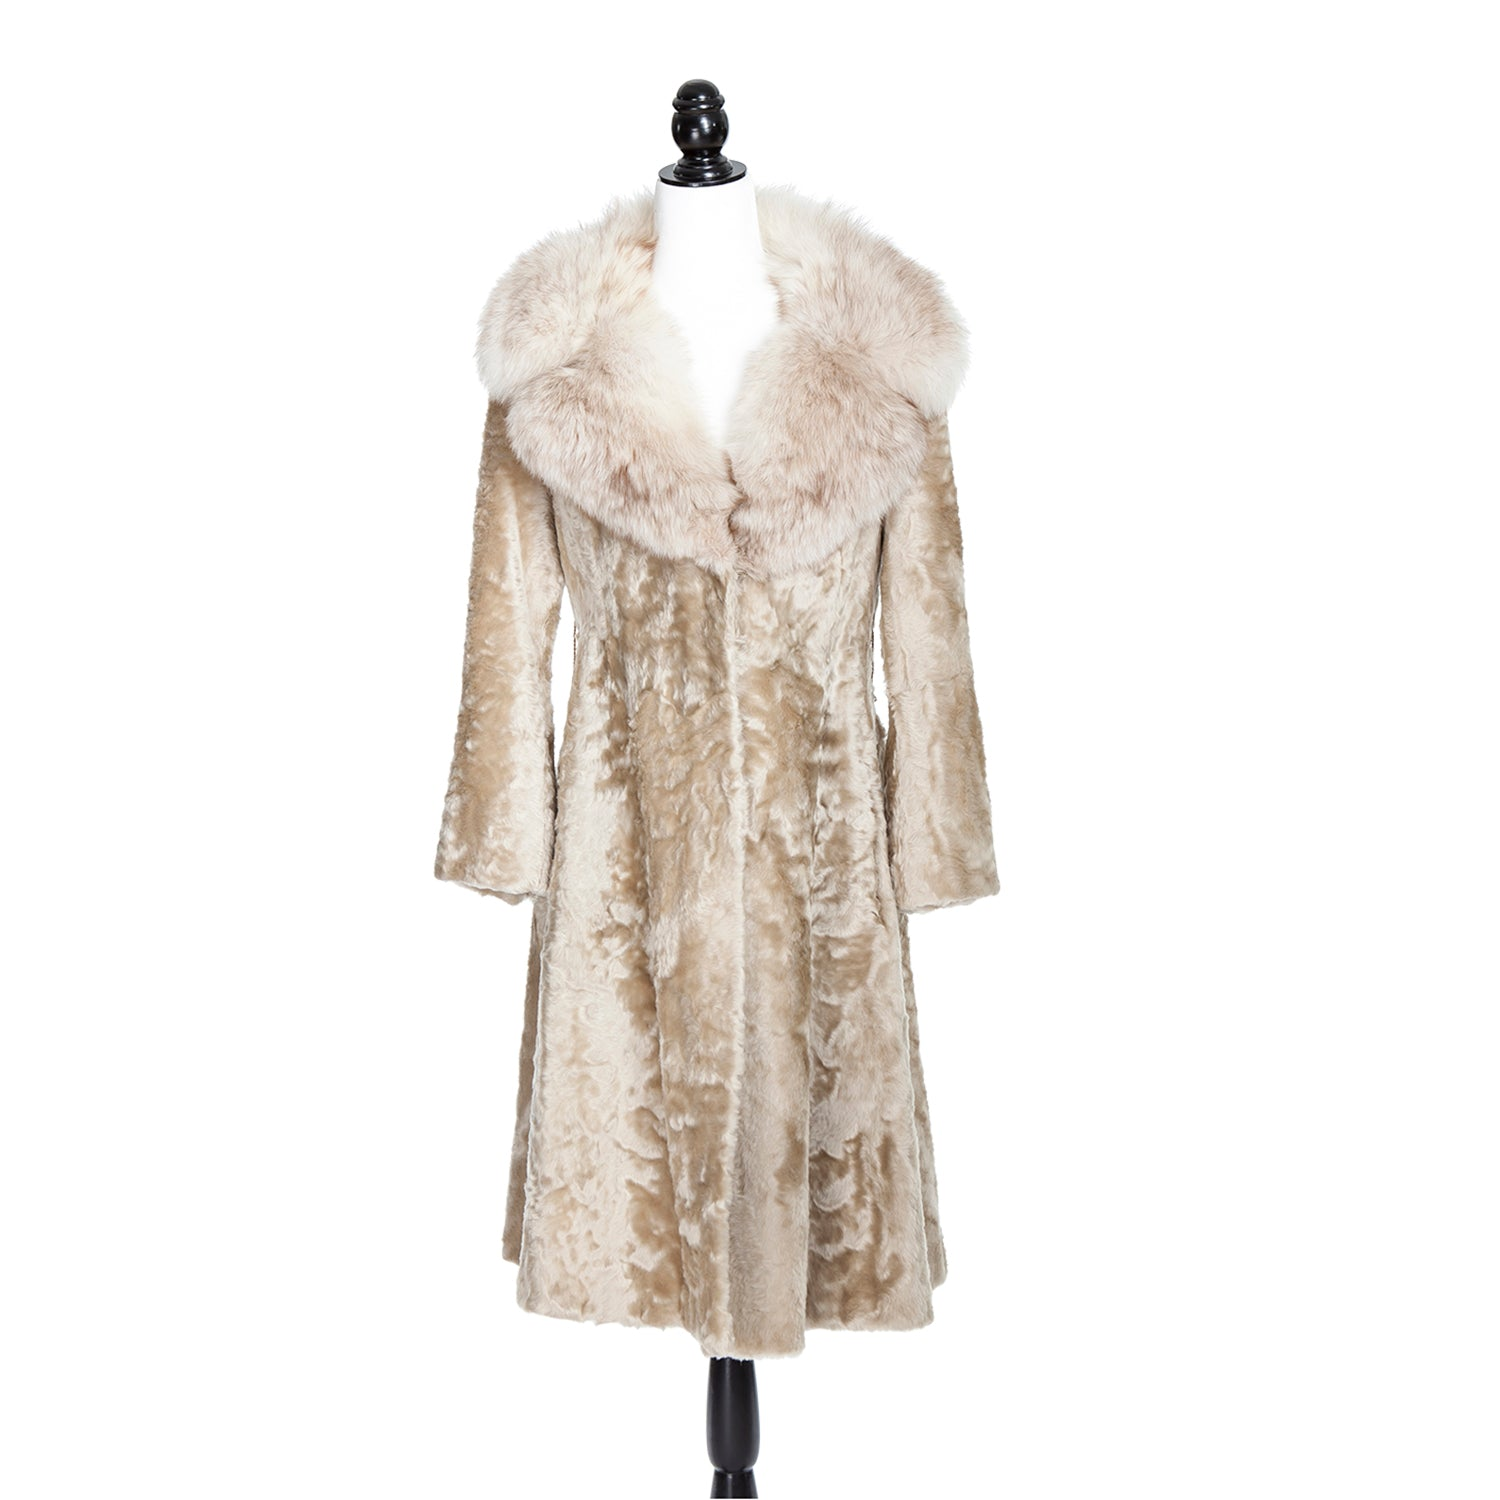 Ivory Astrakan Coat with Fox Trim